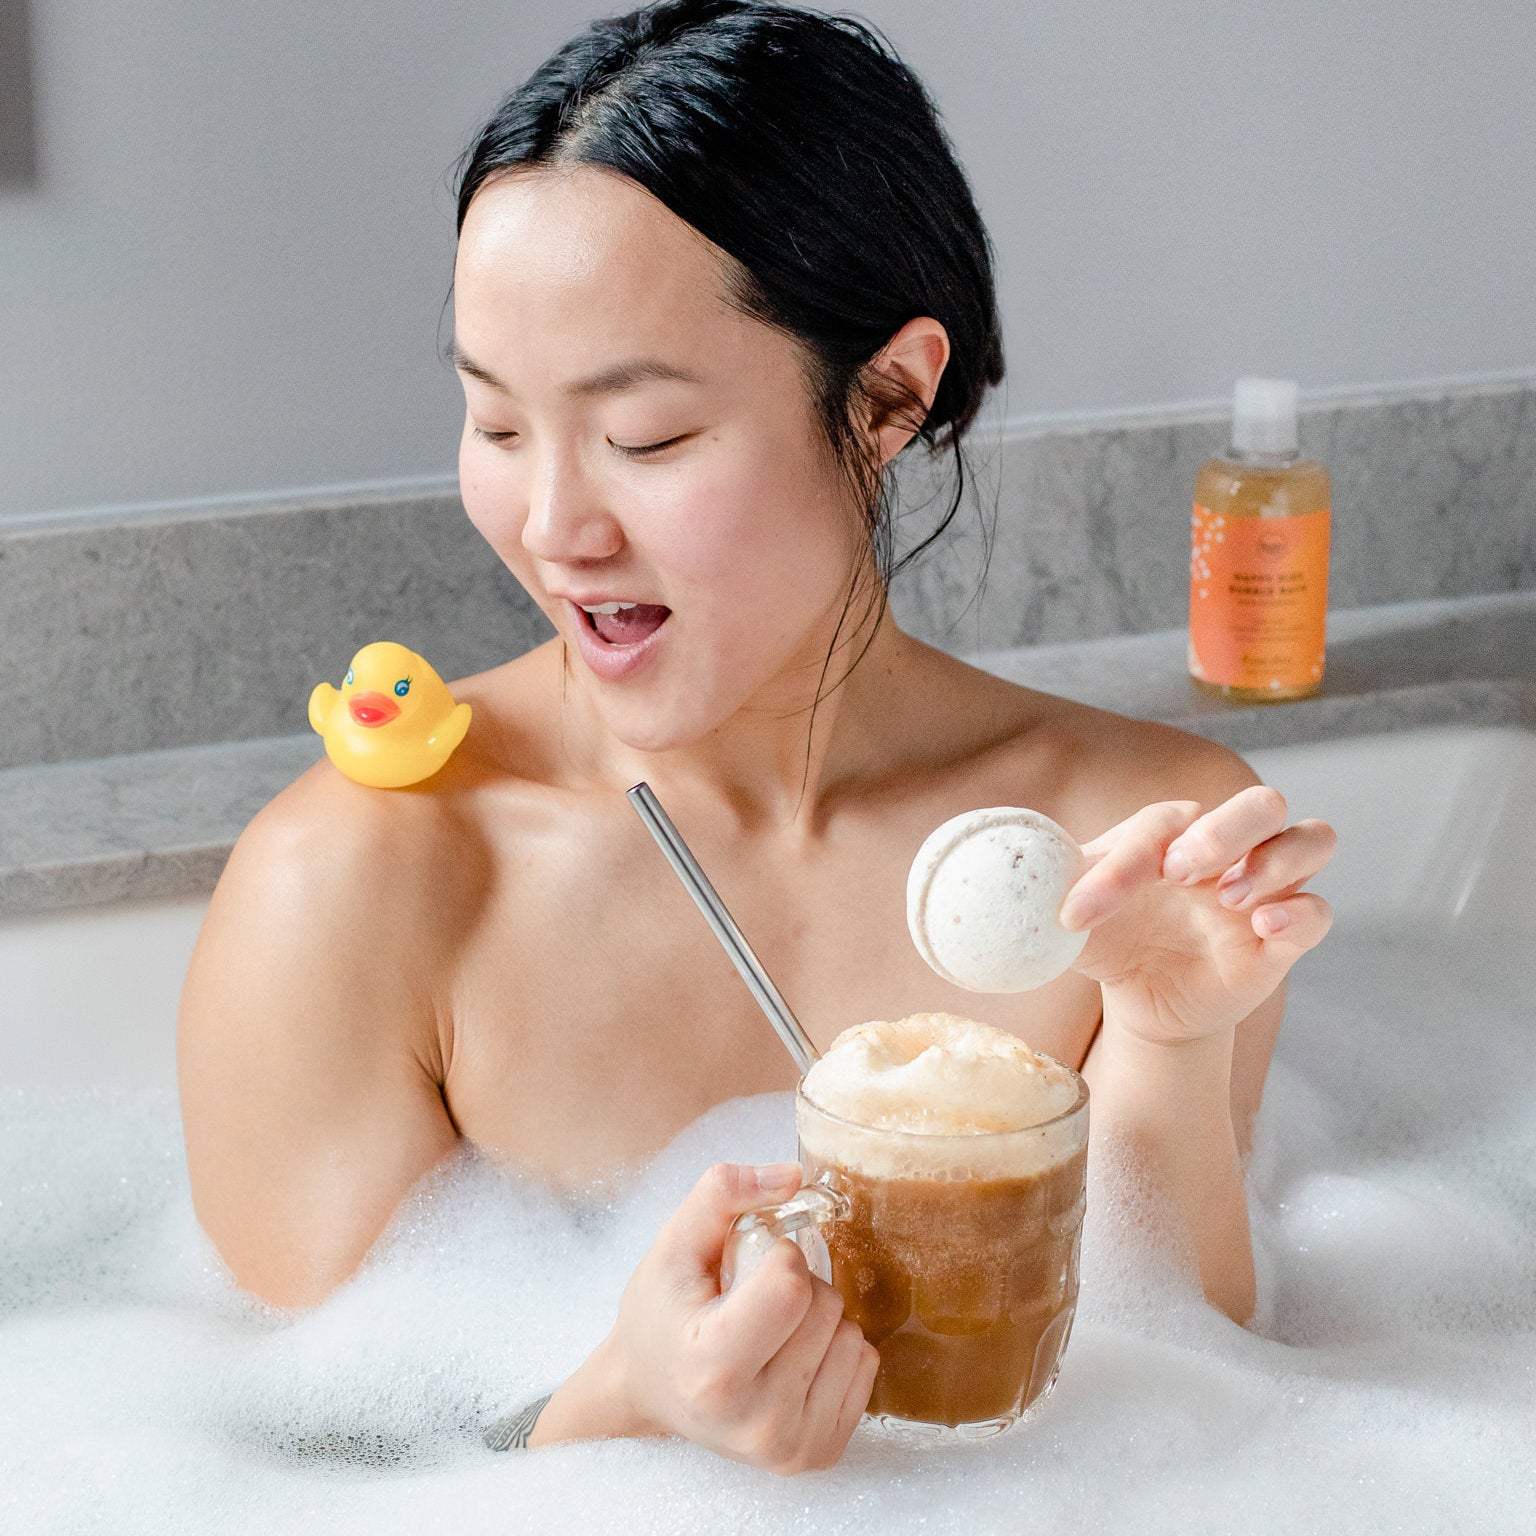 Woman in the bath drinking a root beer float holding a bath bomb with a bottle of all natural sls-free root beer scented bubble bath and rubber ducky in the background.